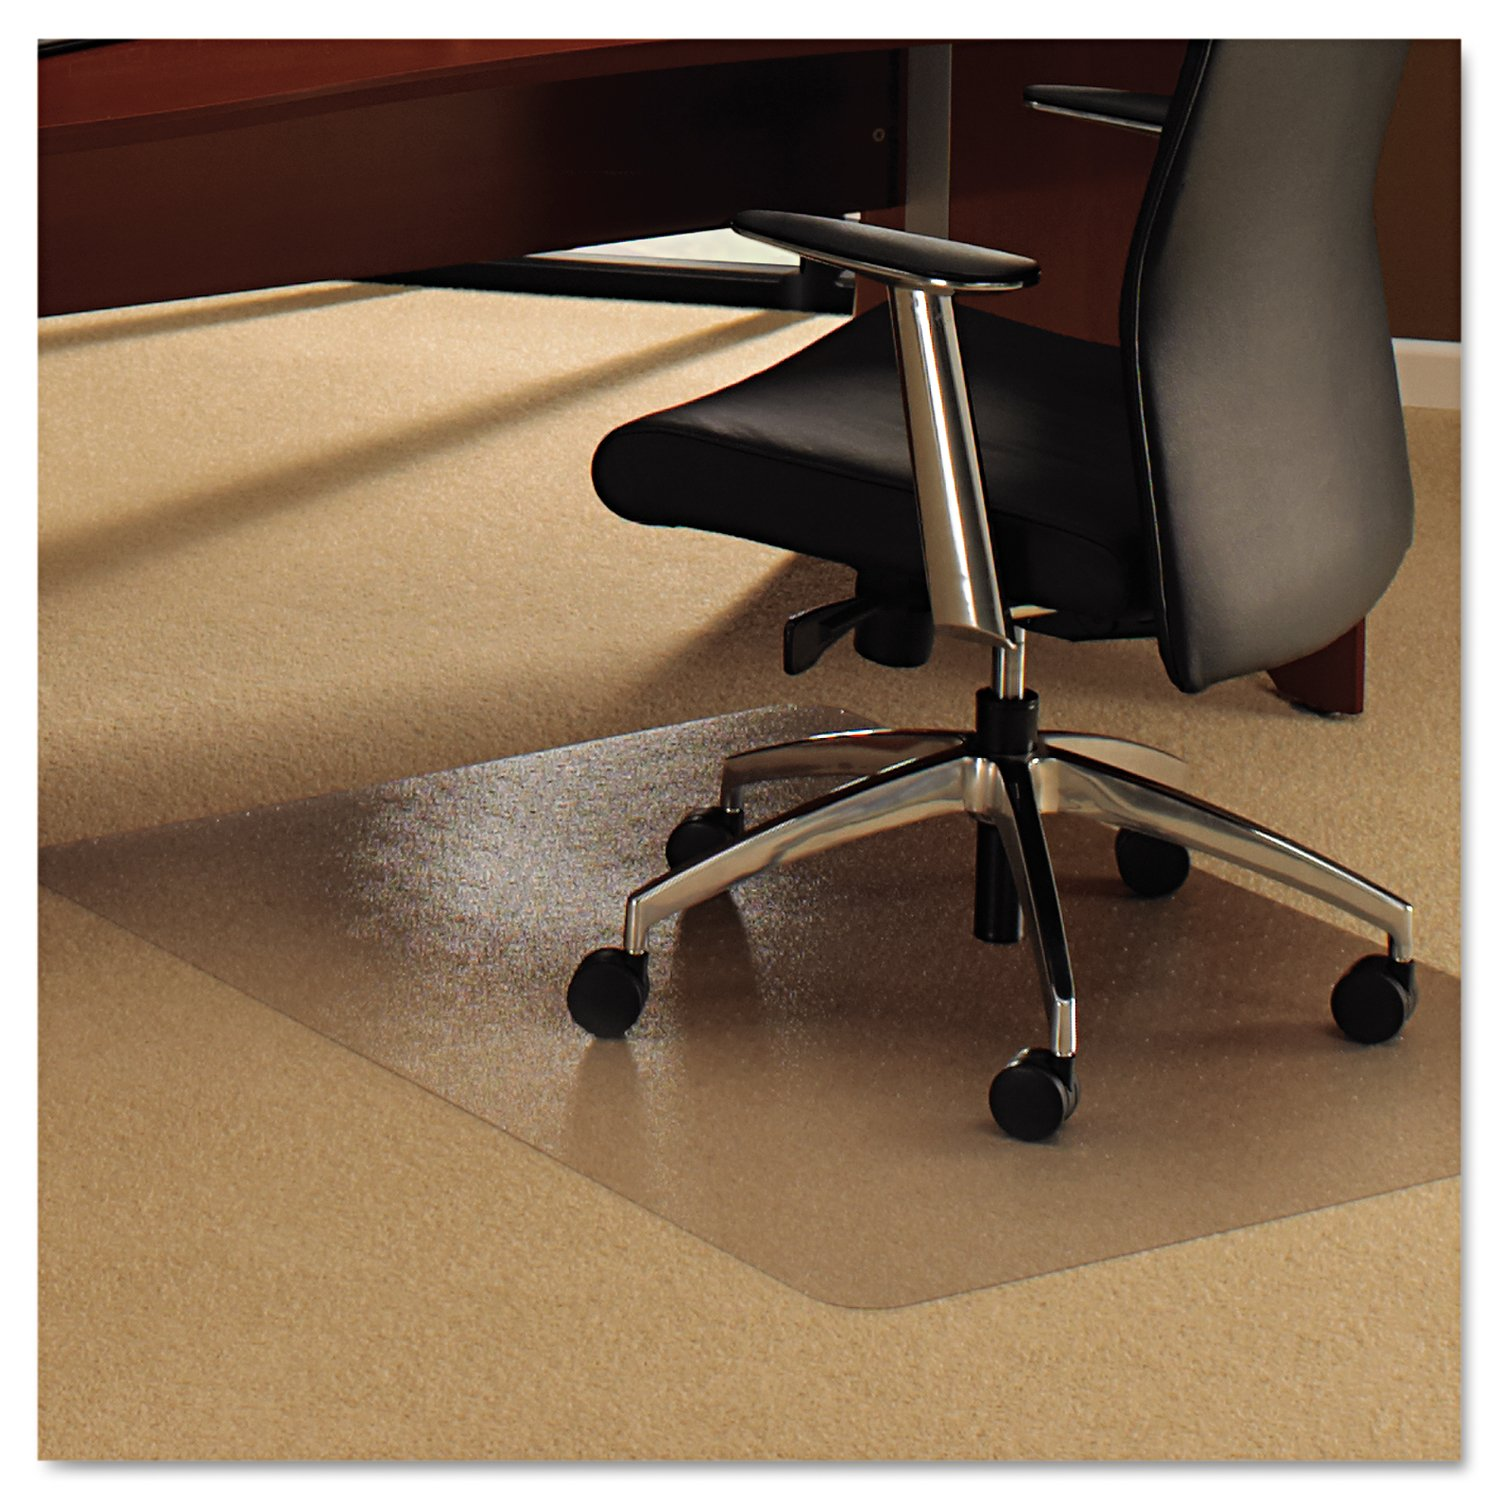 best office chair carpet protector carpet protector for office chair